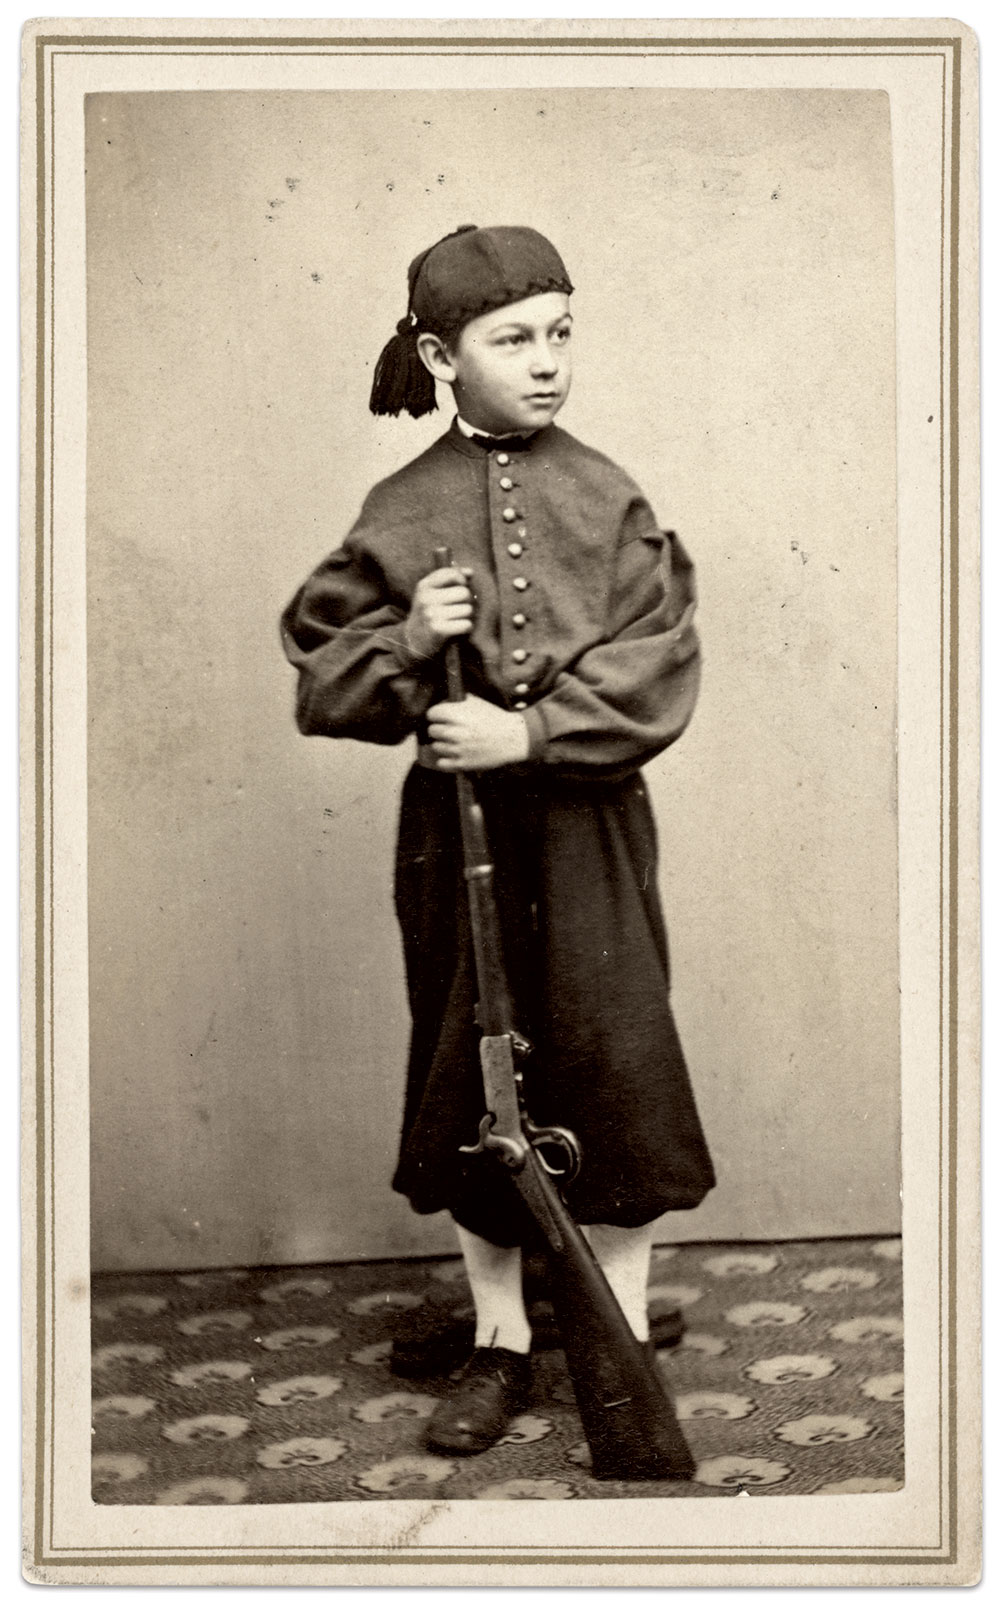 """Inscribed: """"Clarence Ford, son of Dwight Ford."""" Carte de visite by Wayland & McMillan of Providence, R.I. Charles Darden Collection."""